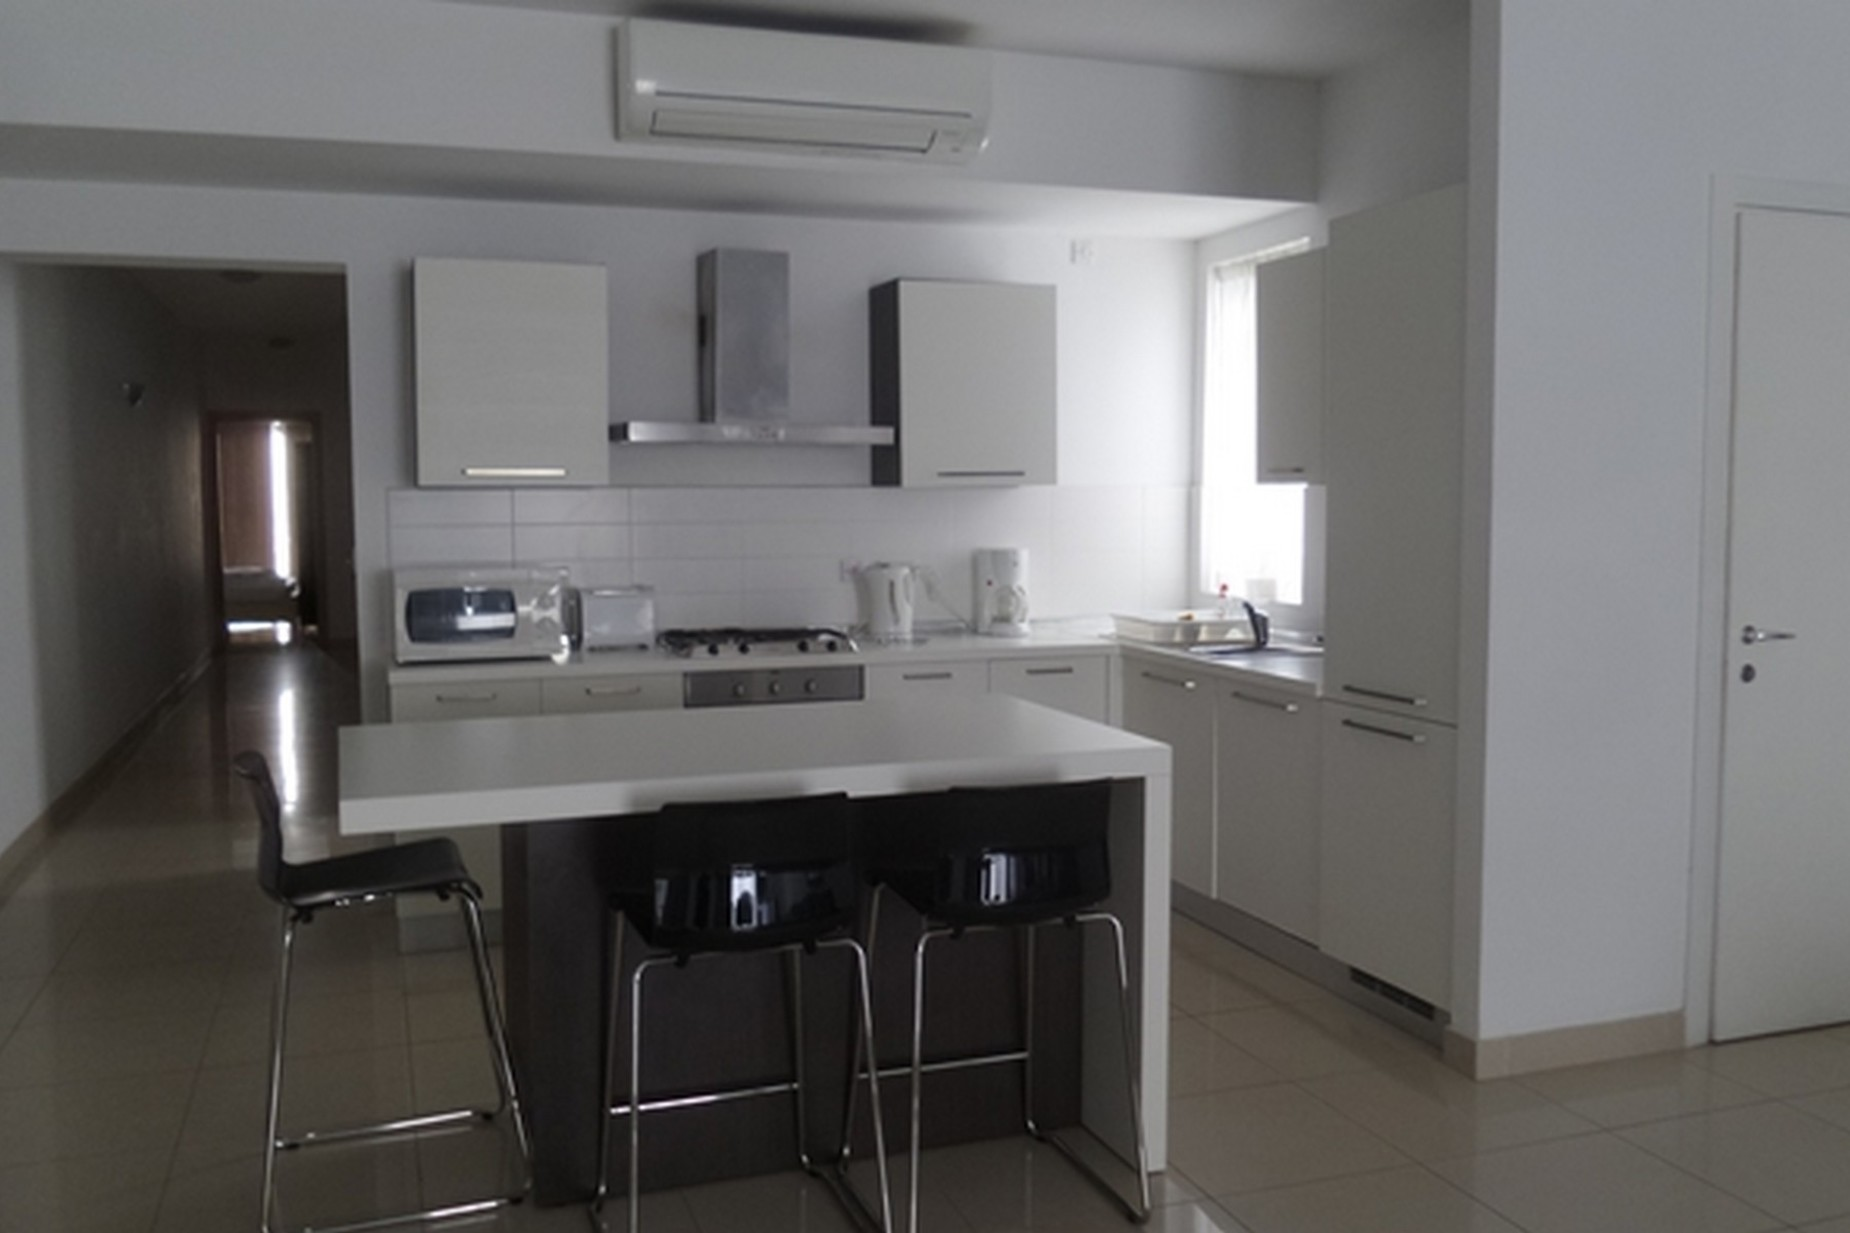 3 bed Apartment For Rent in Sliema, Sliema - thumb 3